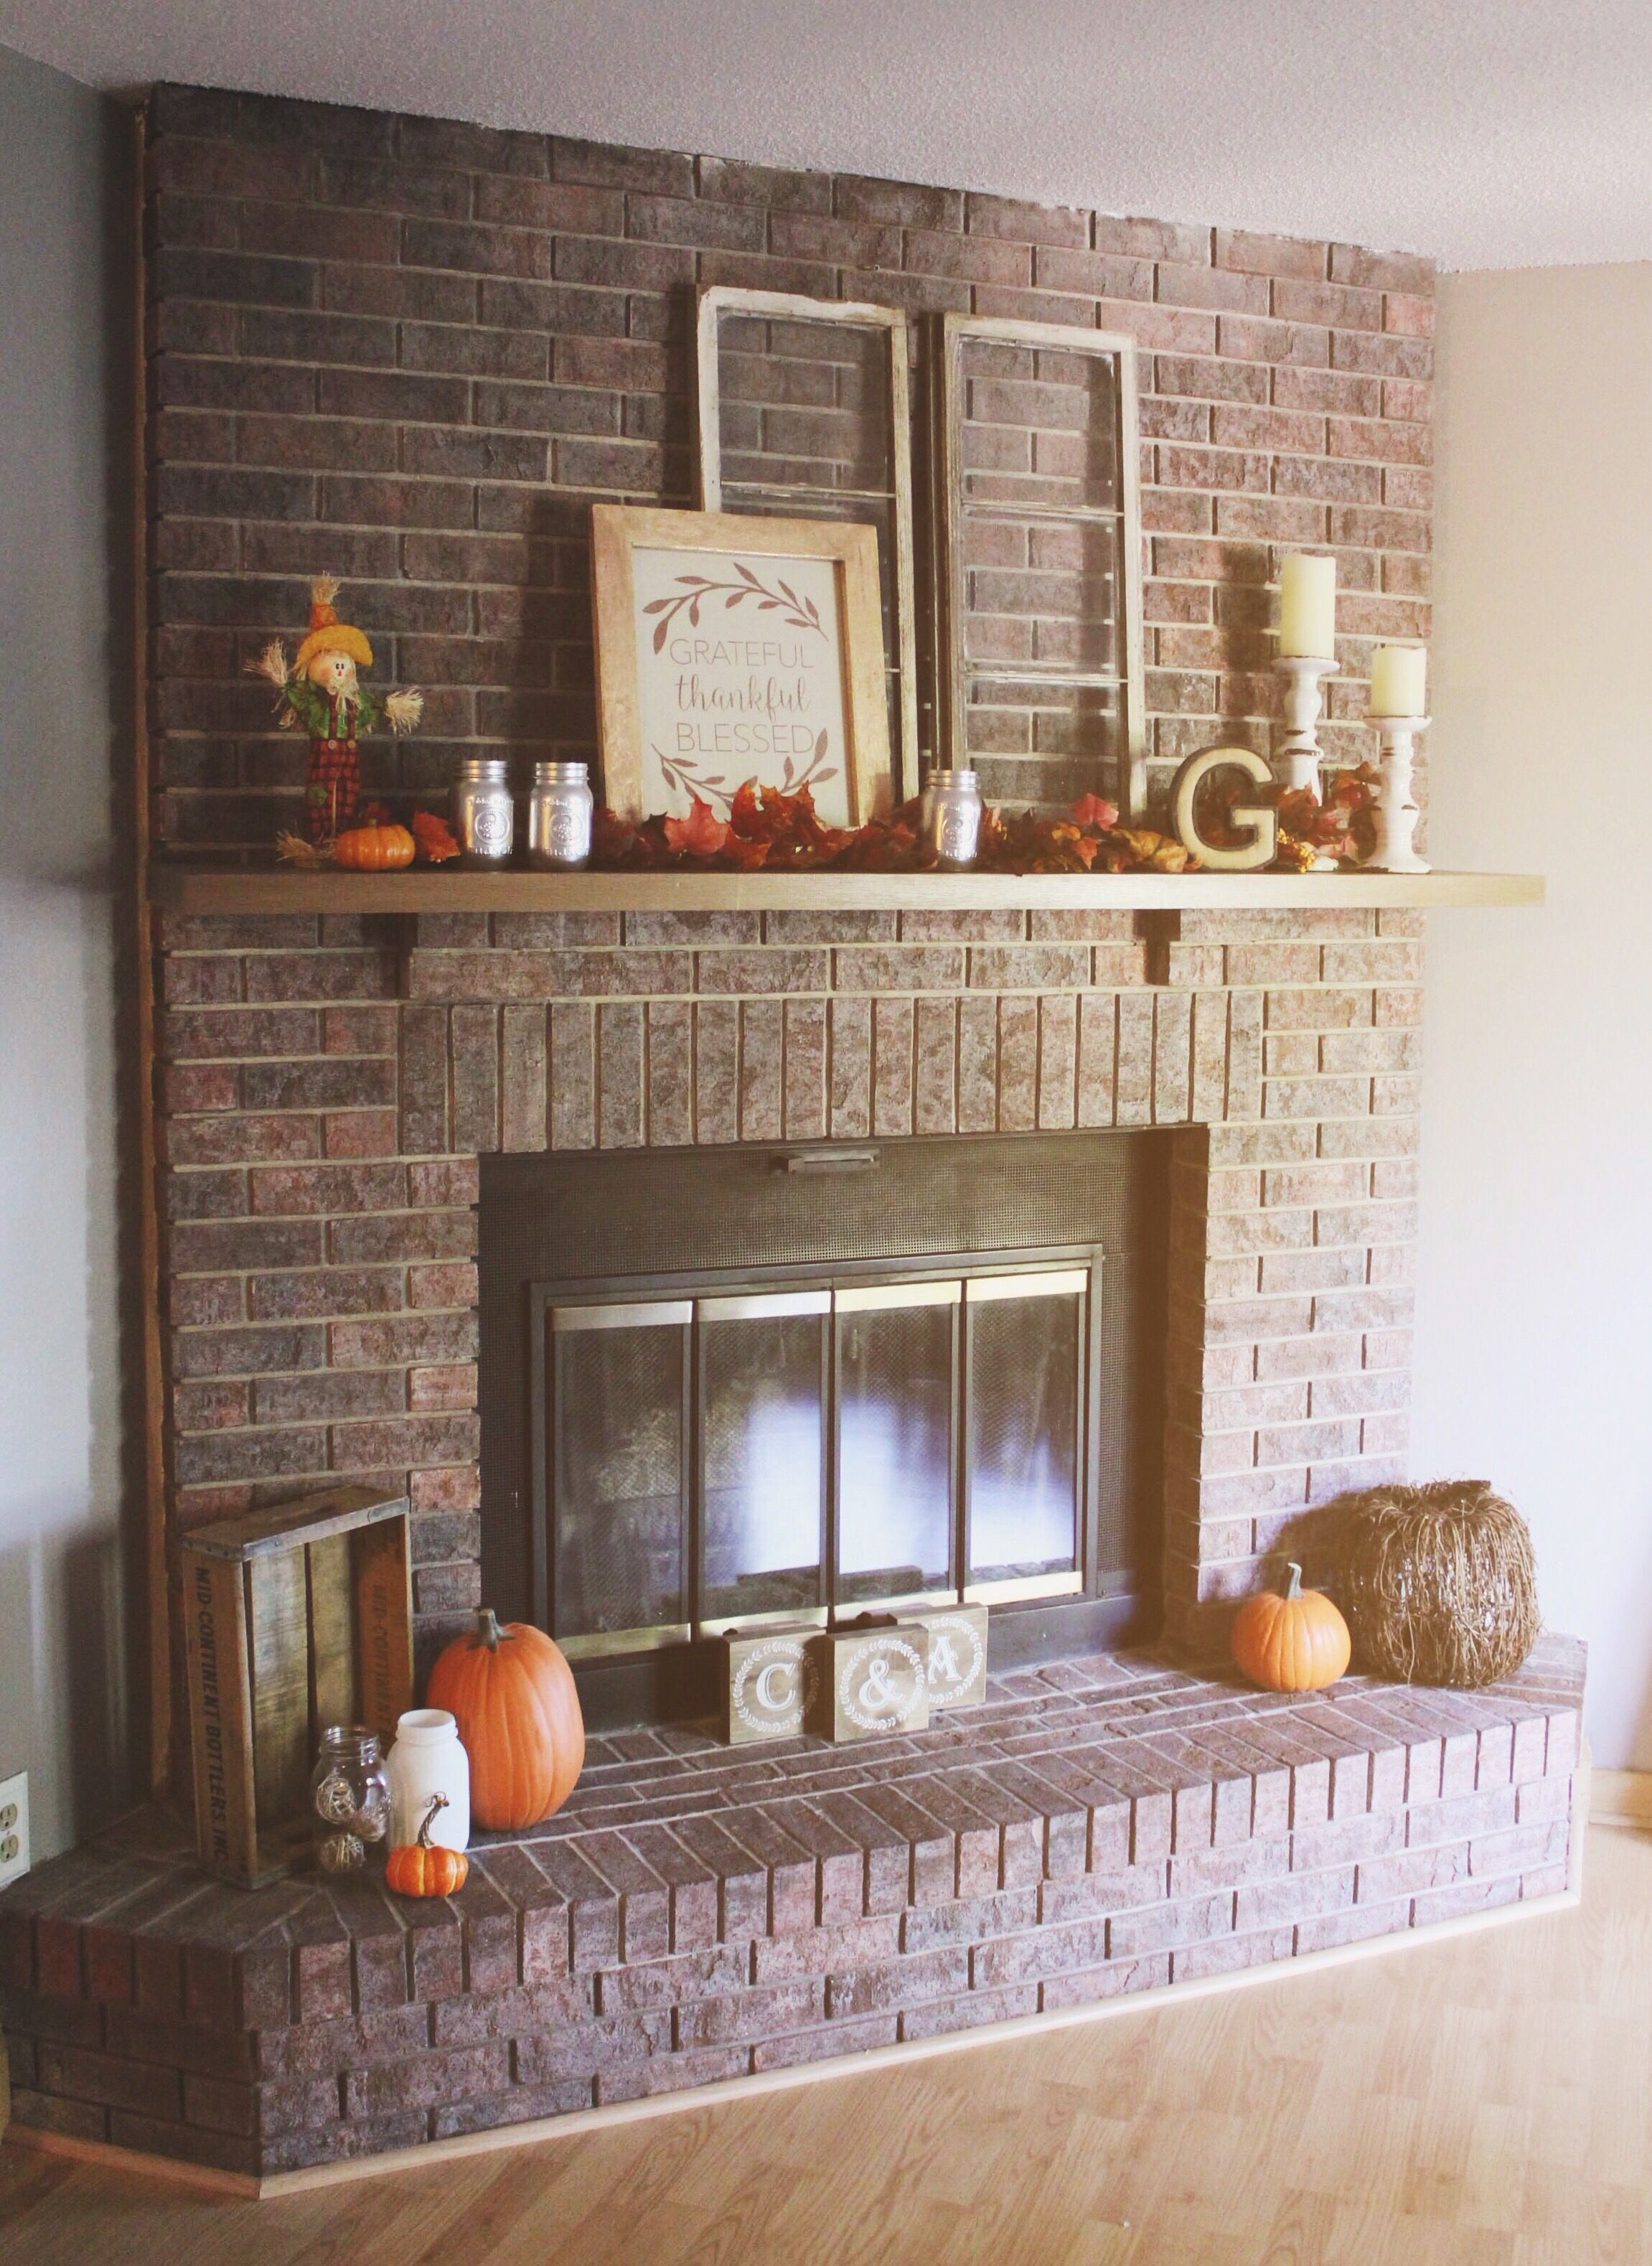 Our cozy rustic chic fall red brick fireplace mantel decor falldecor fireplacedecor - Brick fireplace surrounds ideas ...